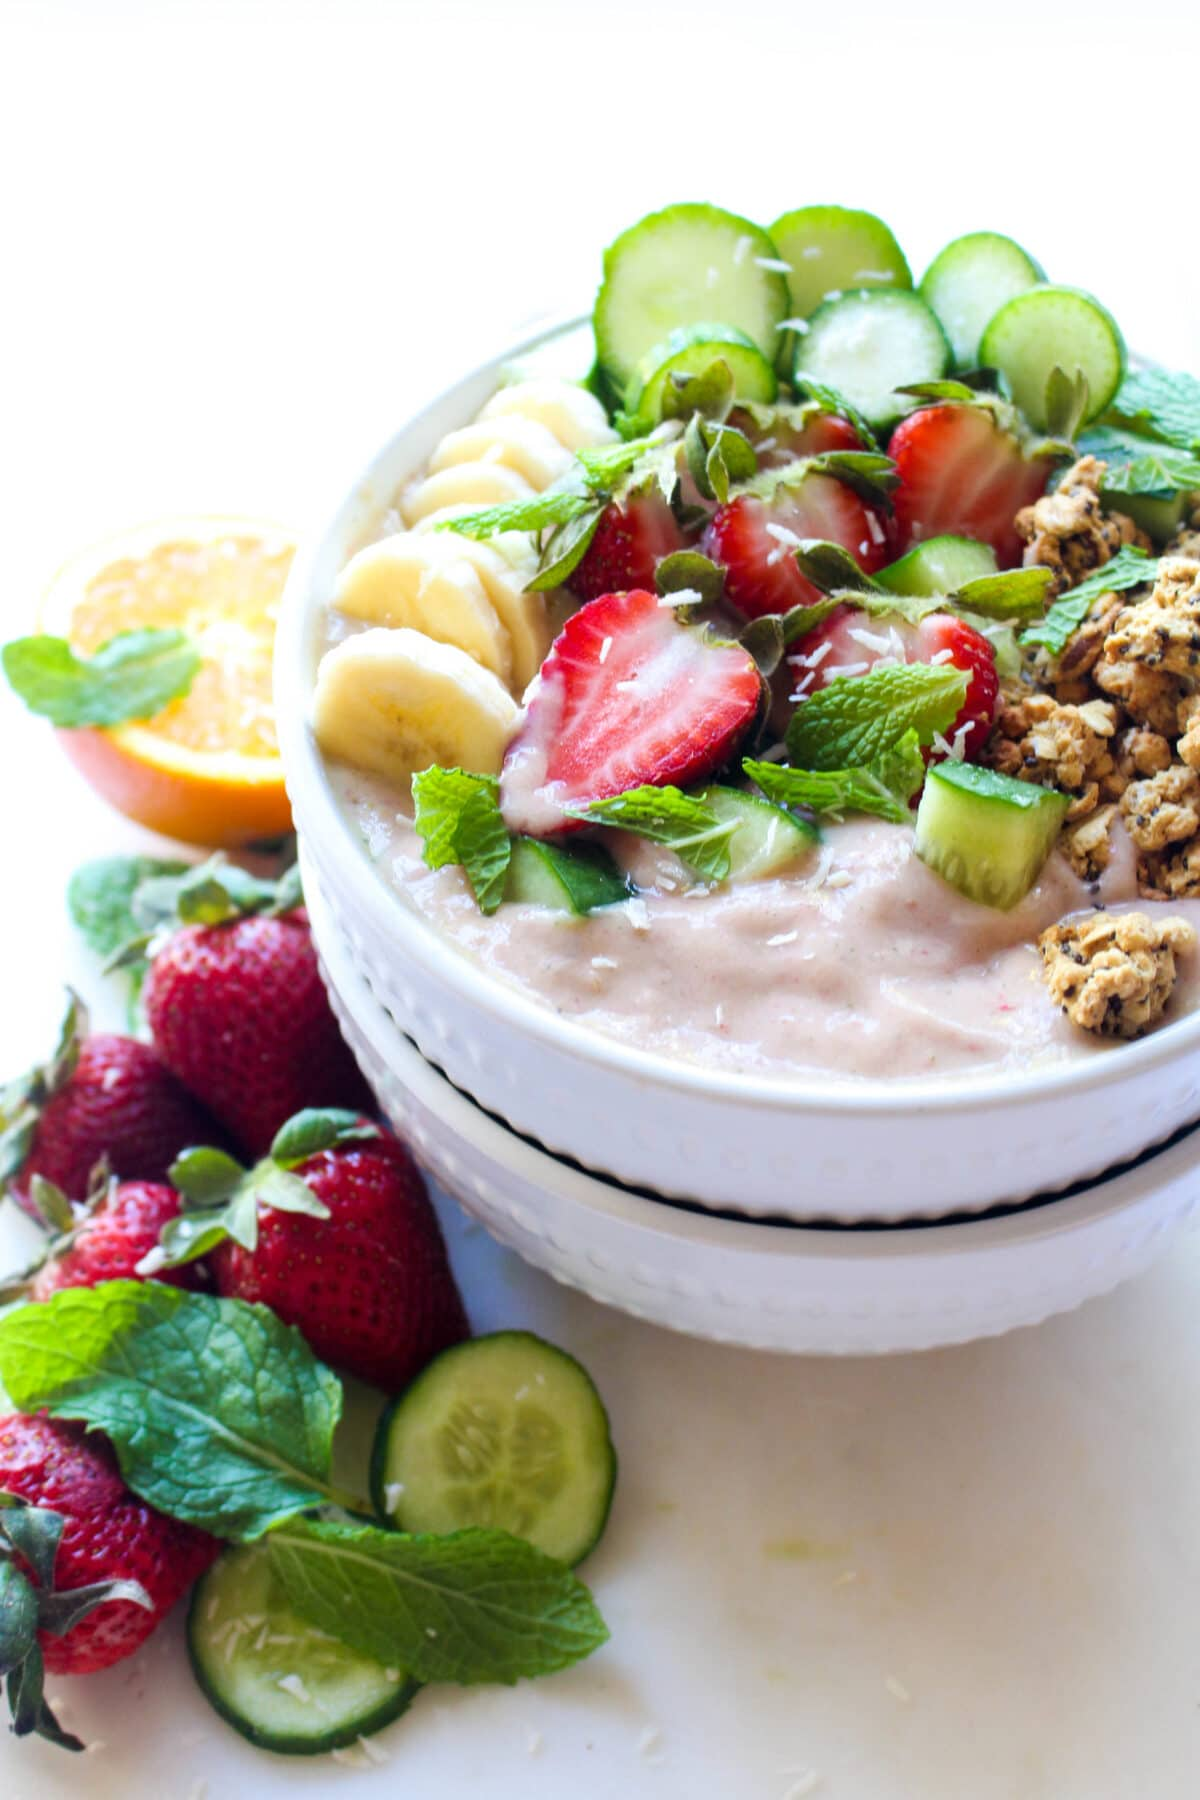 This Strawberry Cucumber Smoothie Bowl recipe tastes like spring! A healthy and quick breakfast idea.